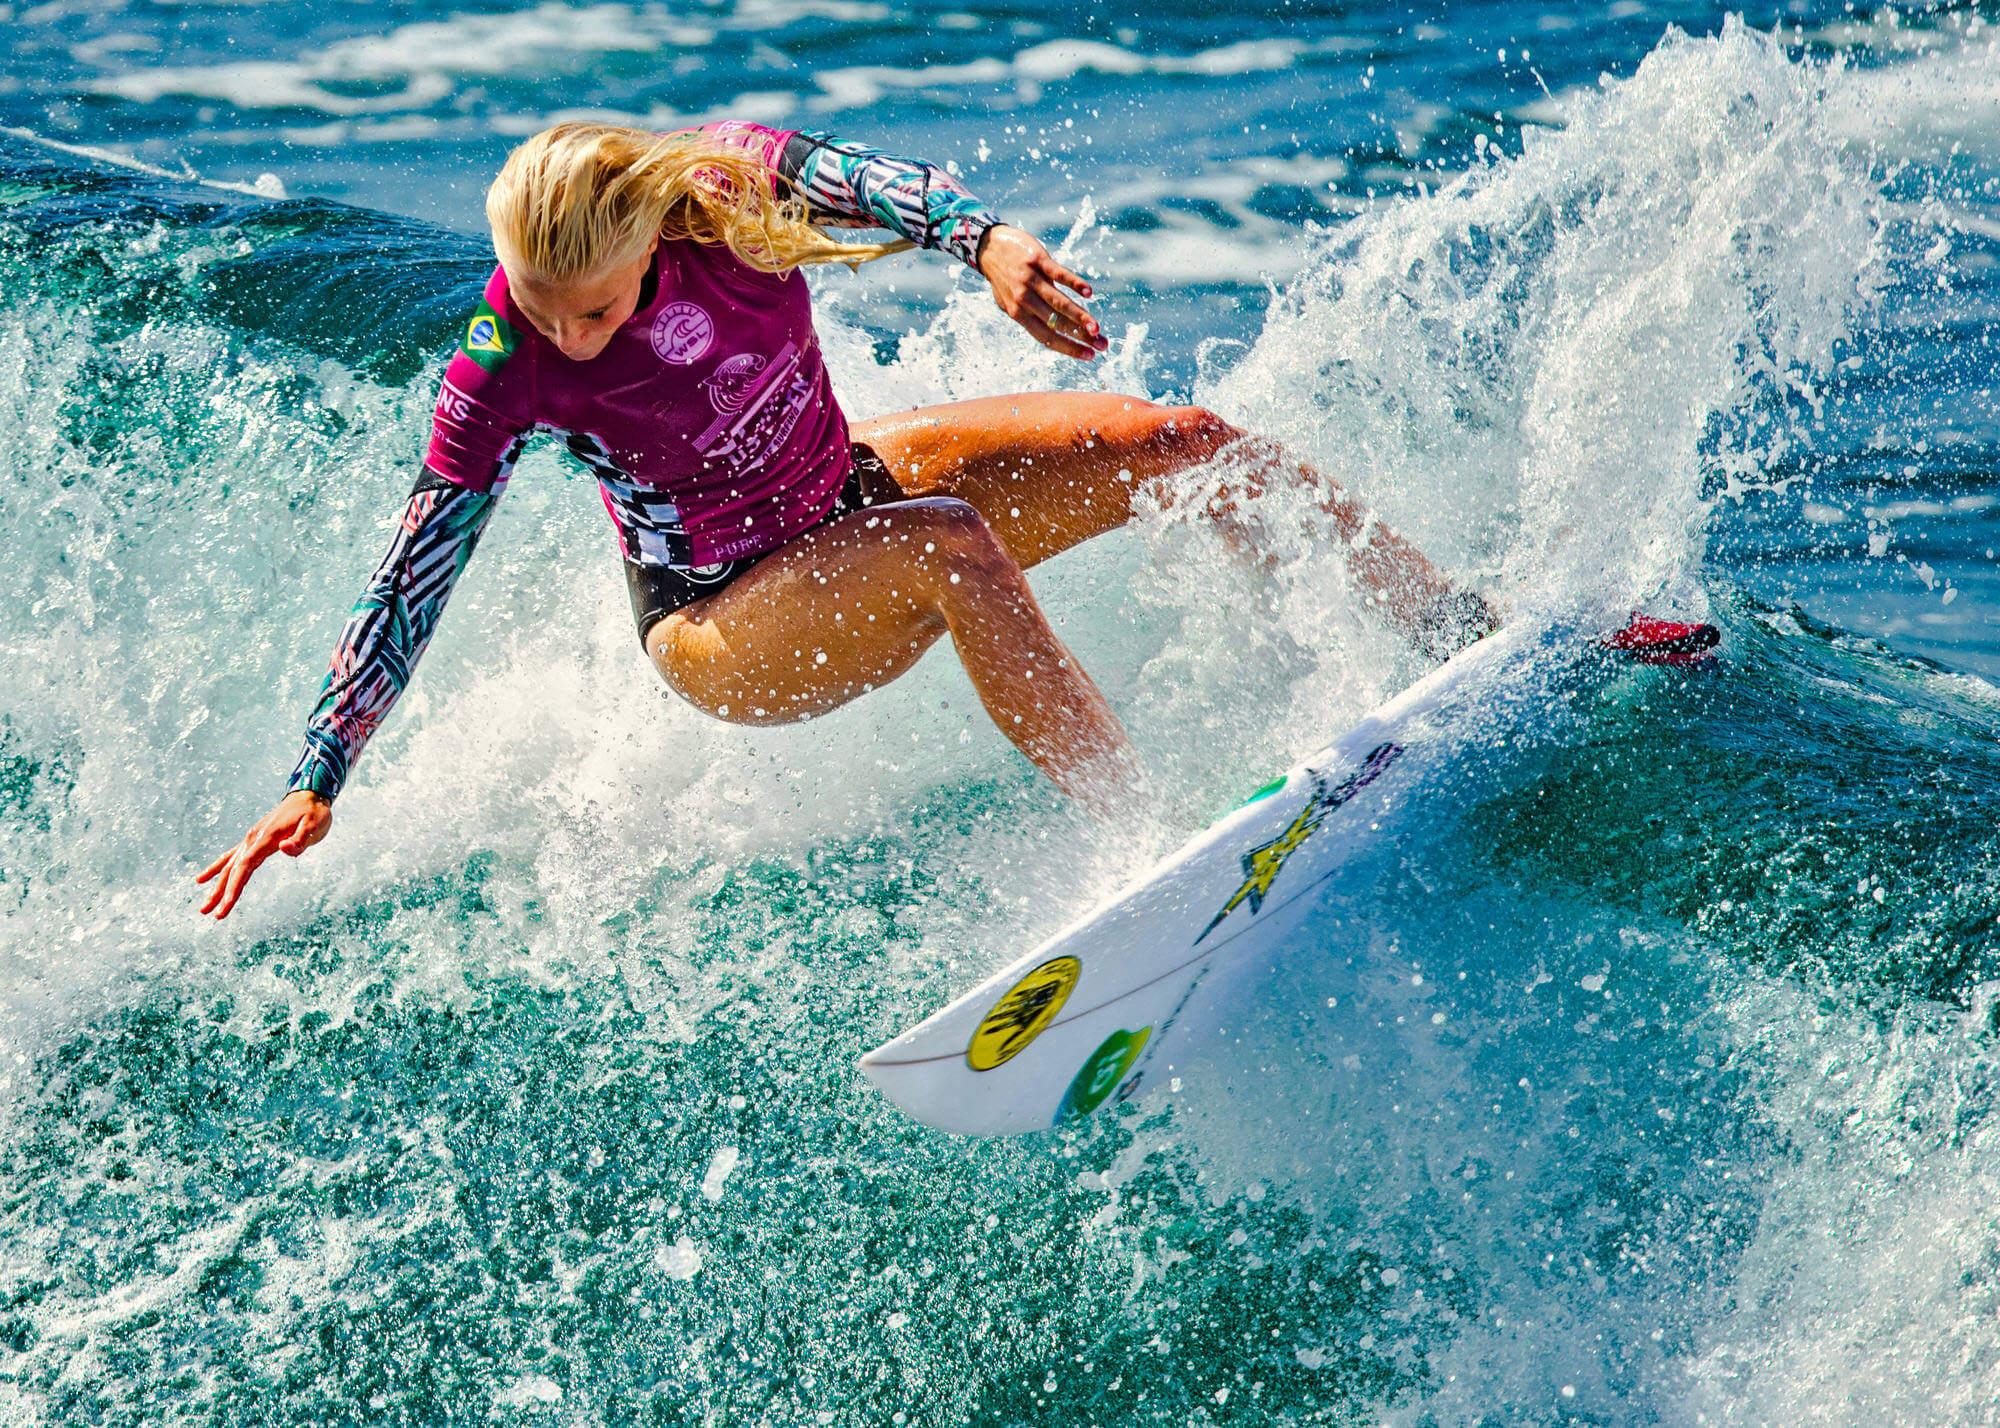 Woman turning on surfboard